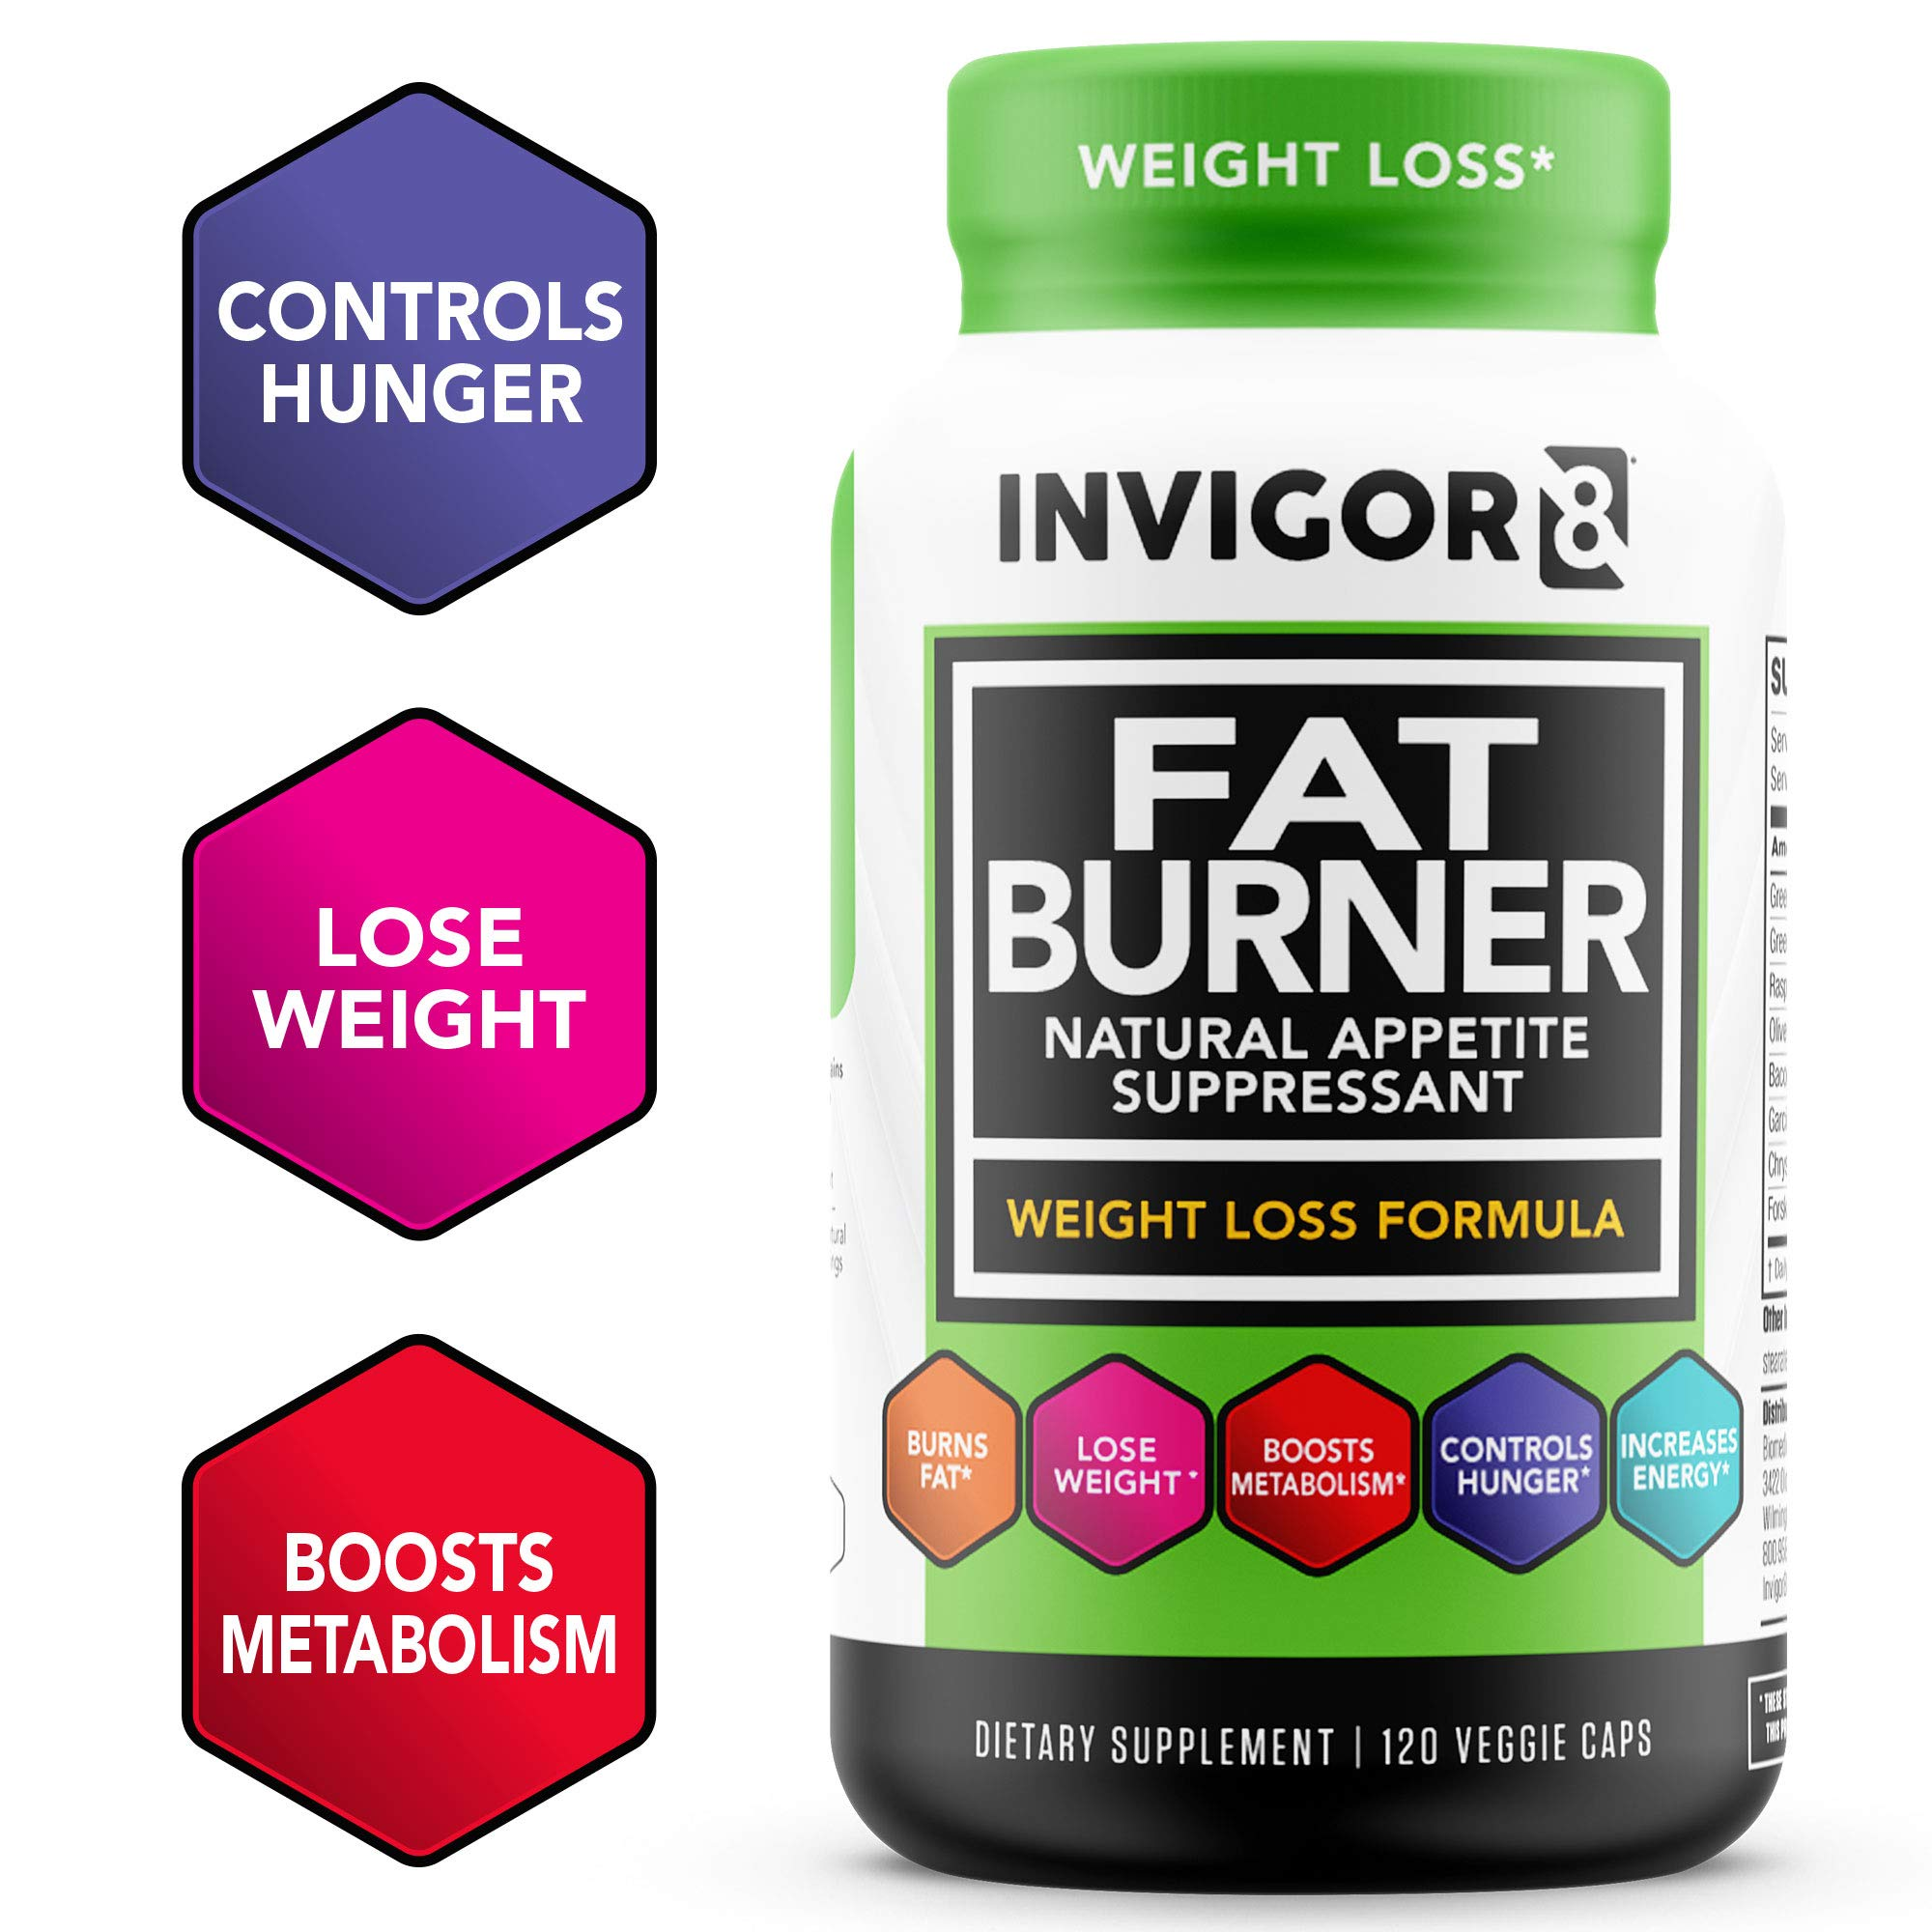 INVIGOR8 Fat Burner. Healthy Garcinia Weight Loss Supplement & Appetite Suppressant with Green Tea Leaf Extract (120 Veggie Capsules) by BRL Sports Nutrition